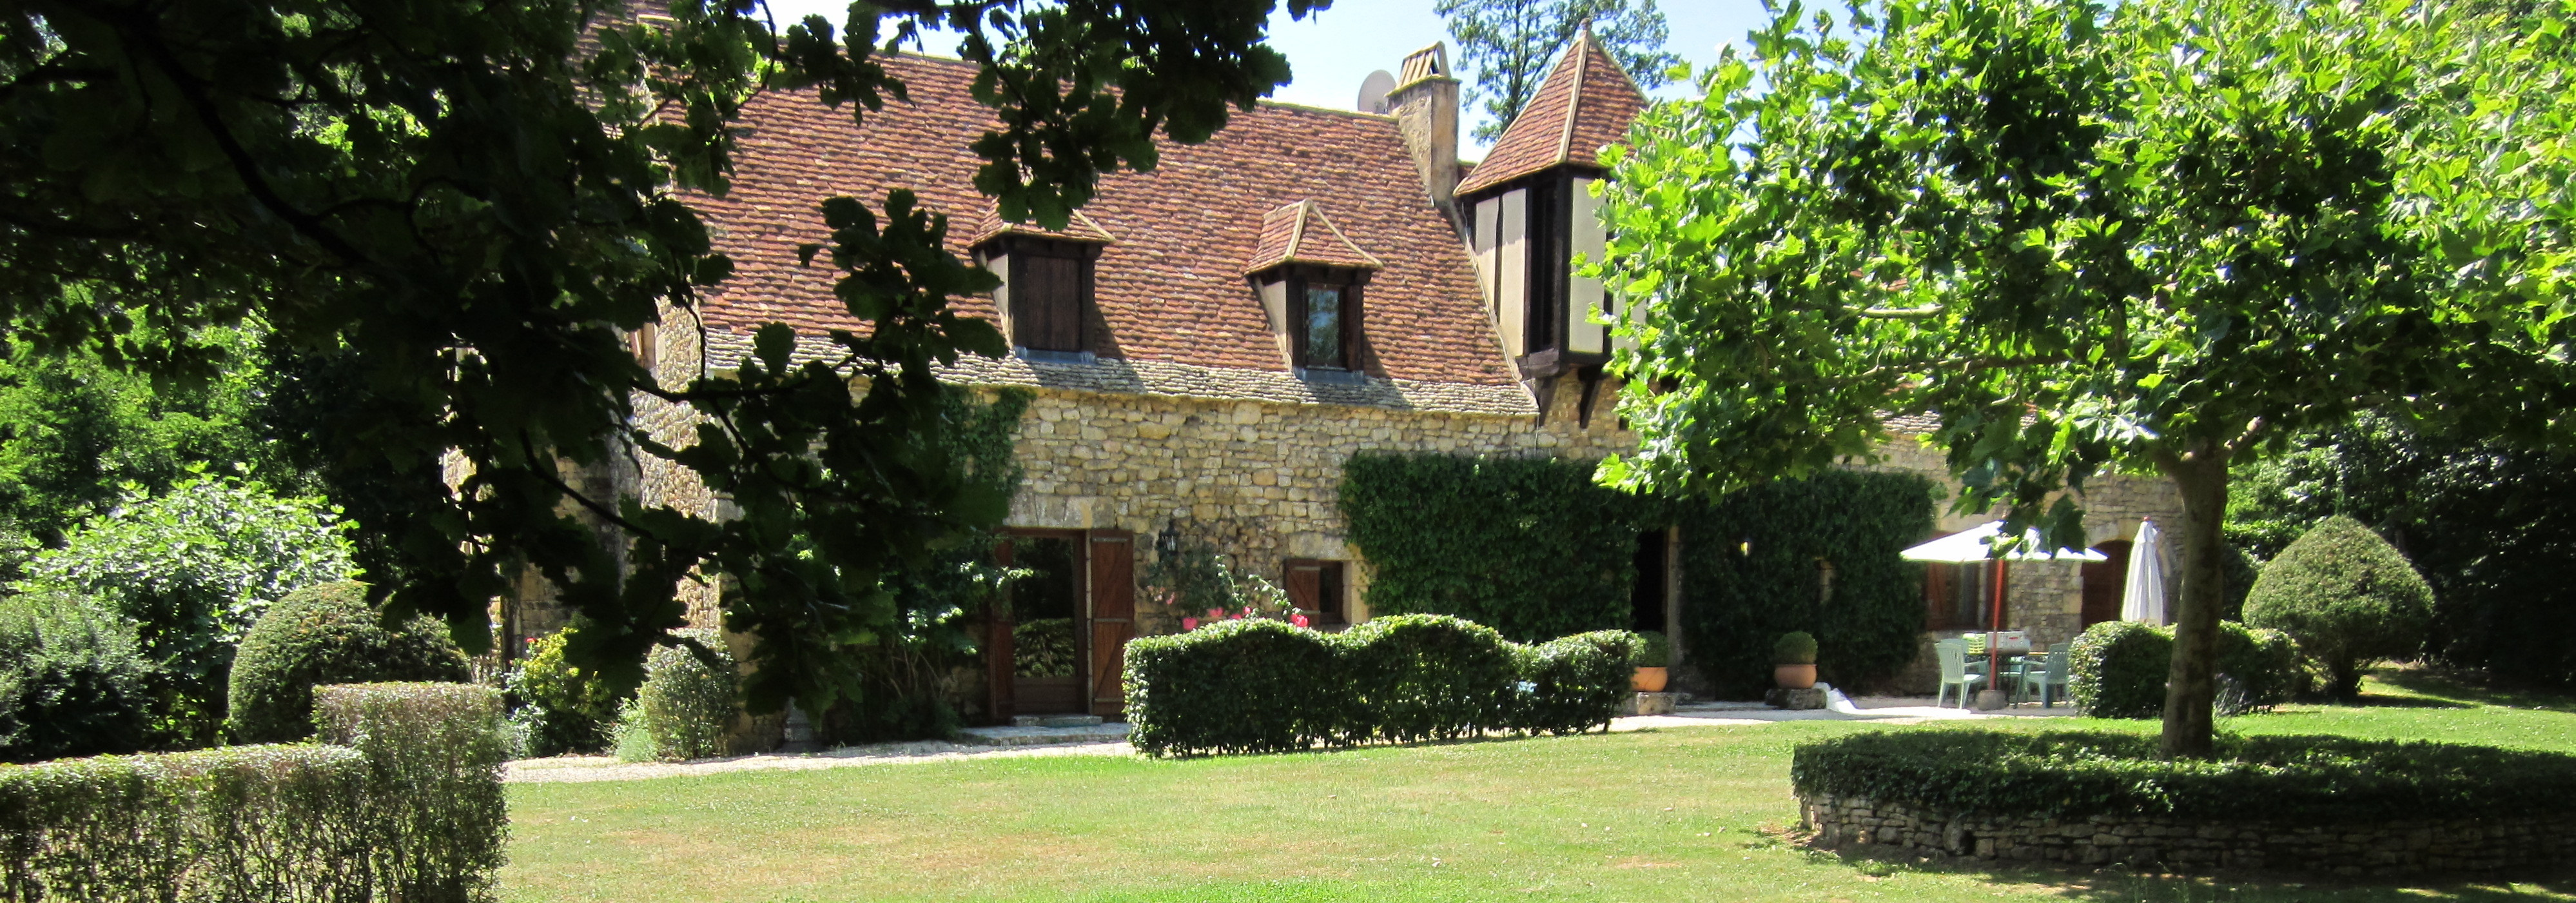 Old manor house, with swimming pool, Dordogne valley